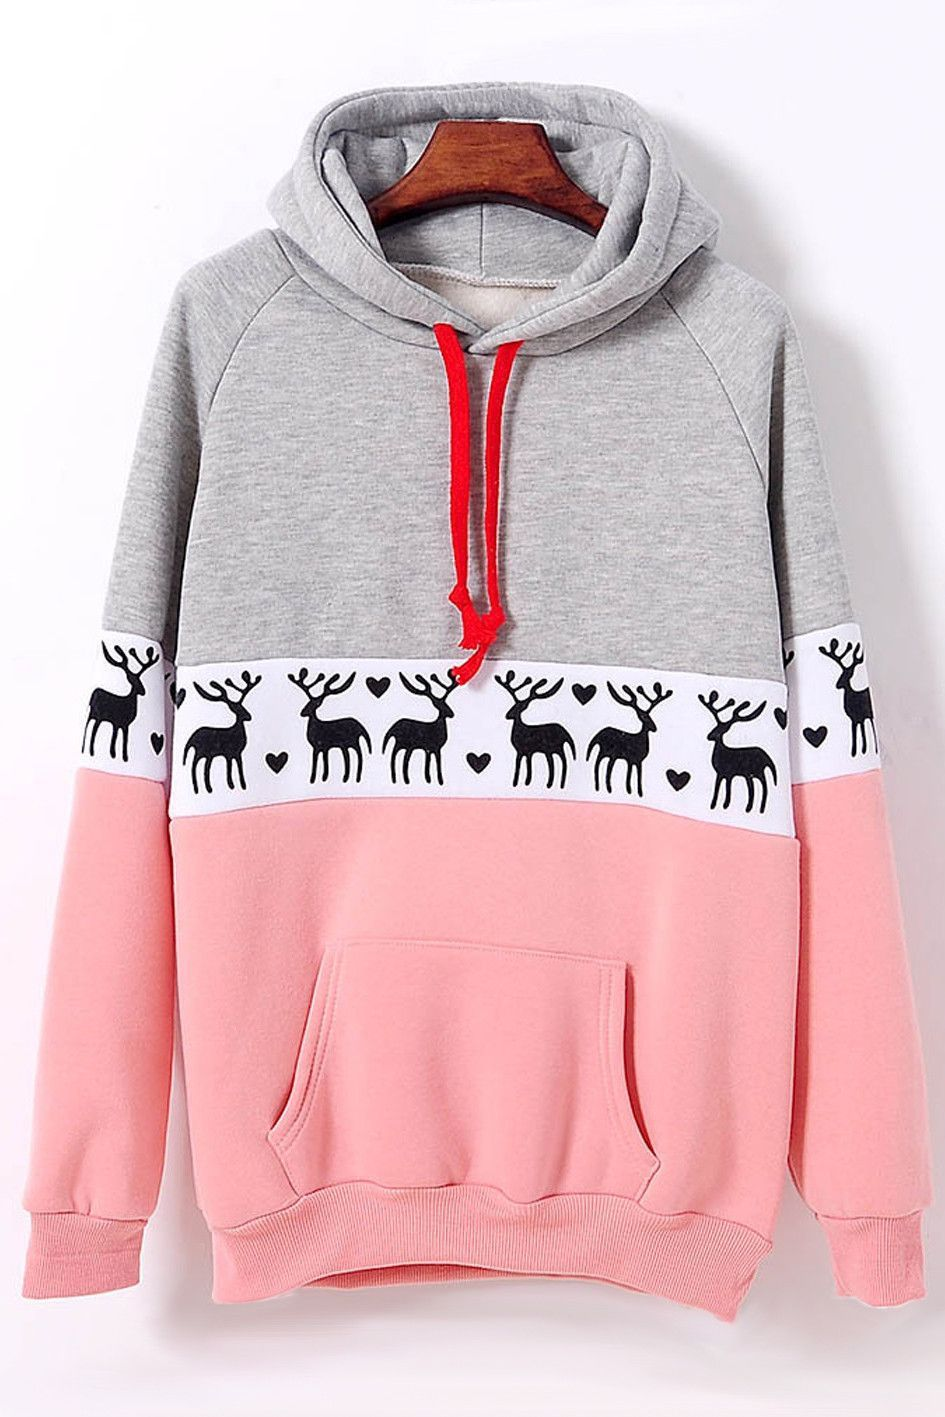 Christmas Deer Pullover Sweatshirt Hoodie Top Sweater | Christmas ...